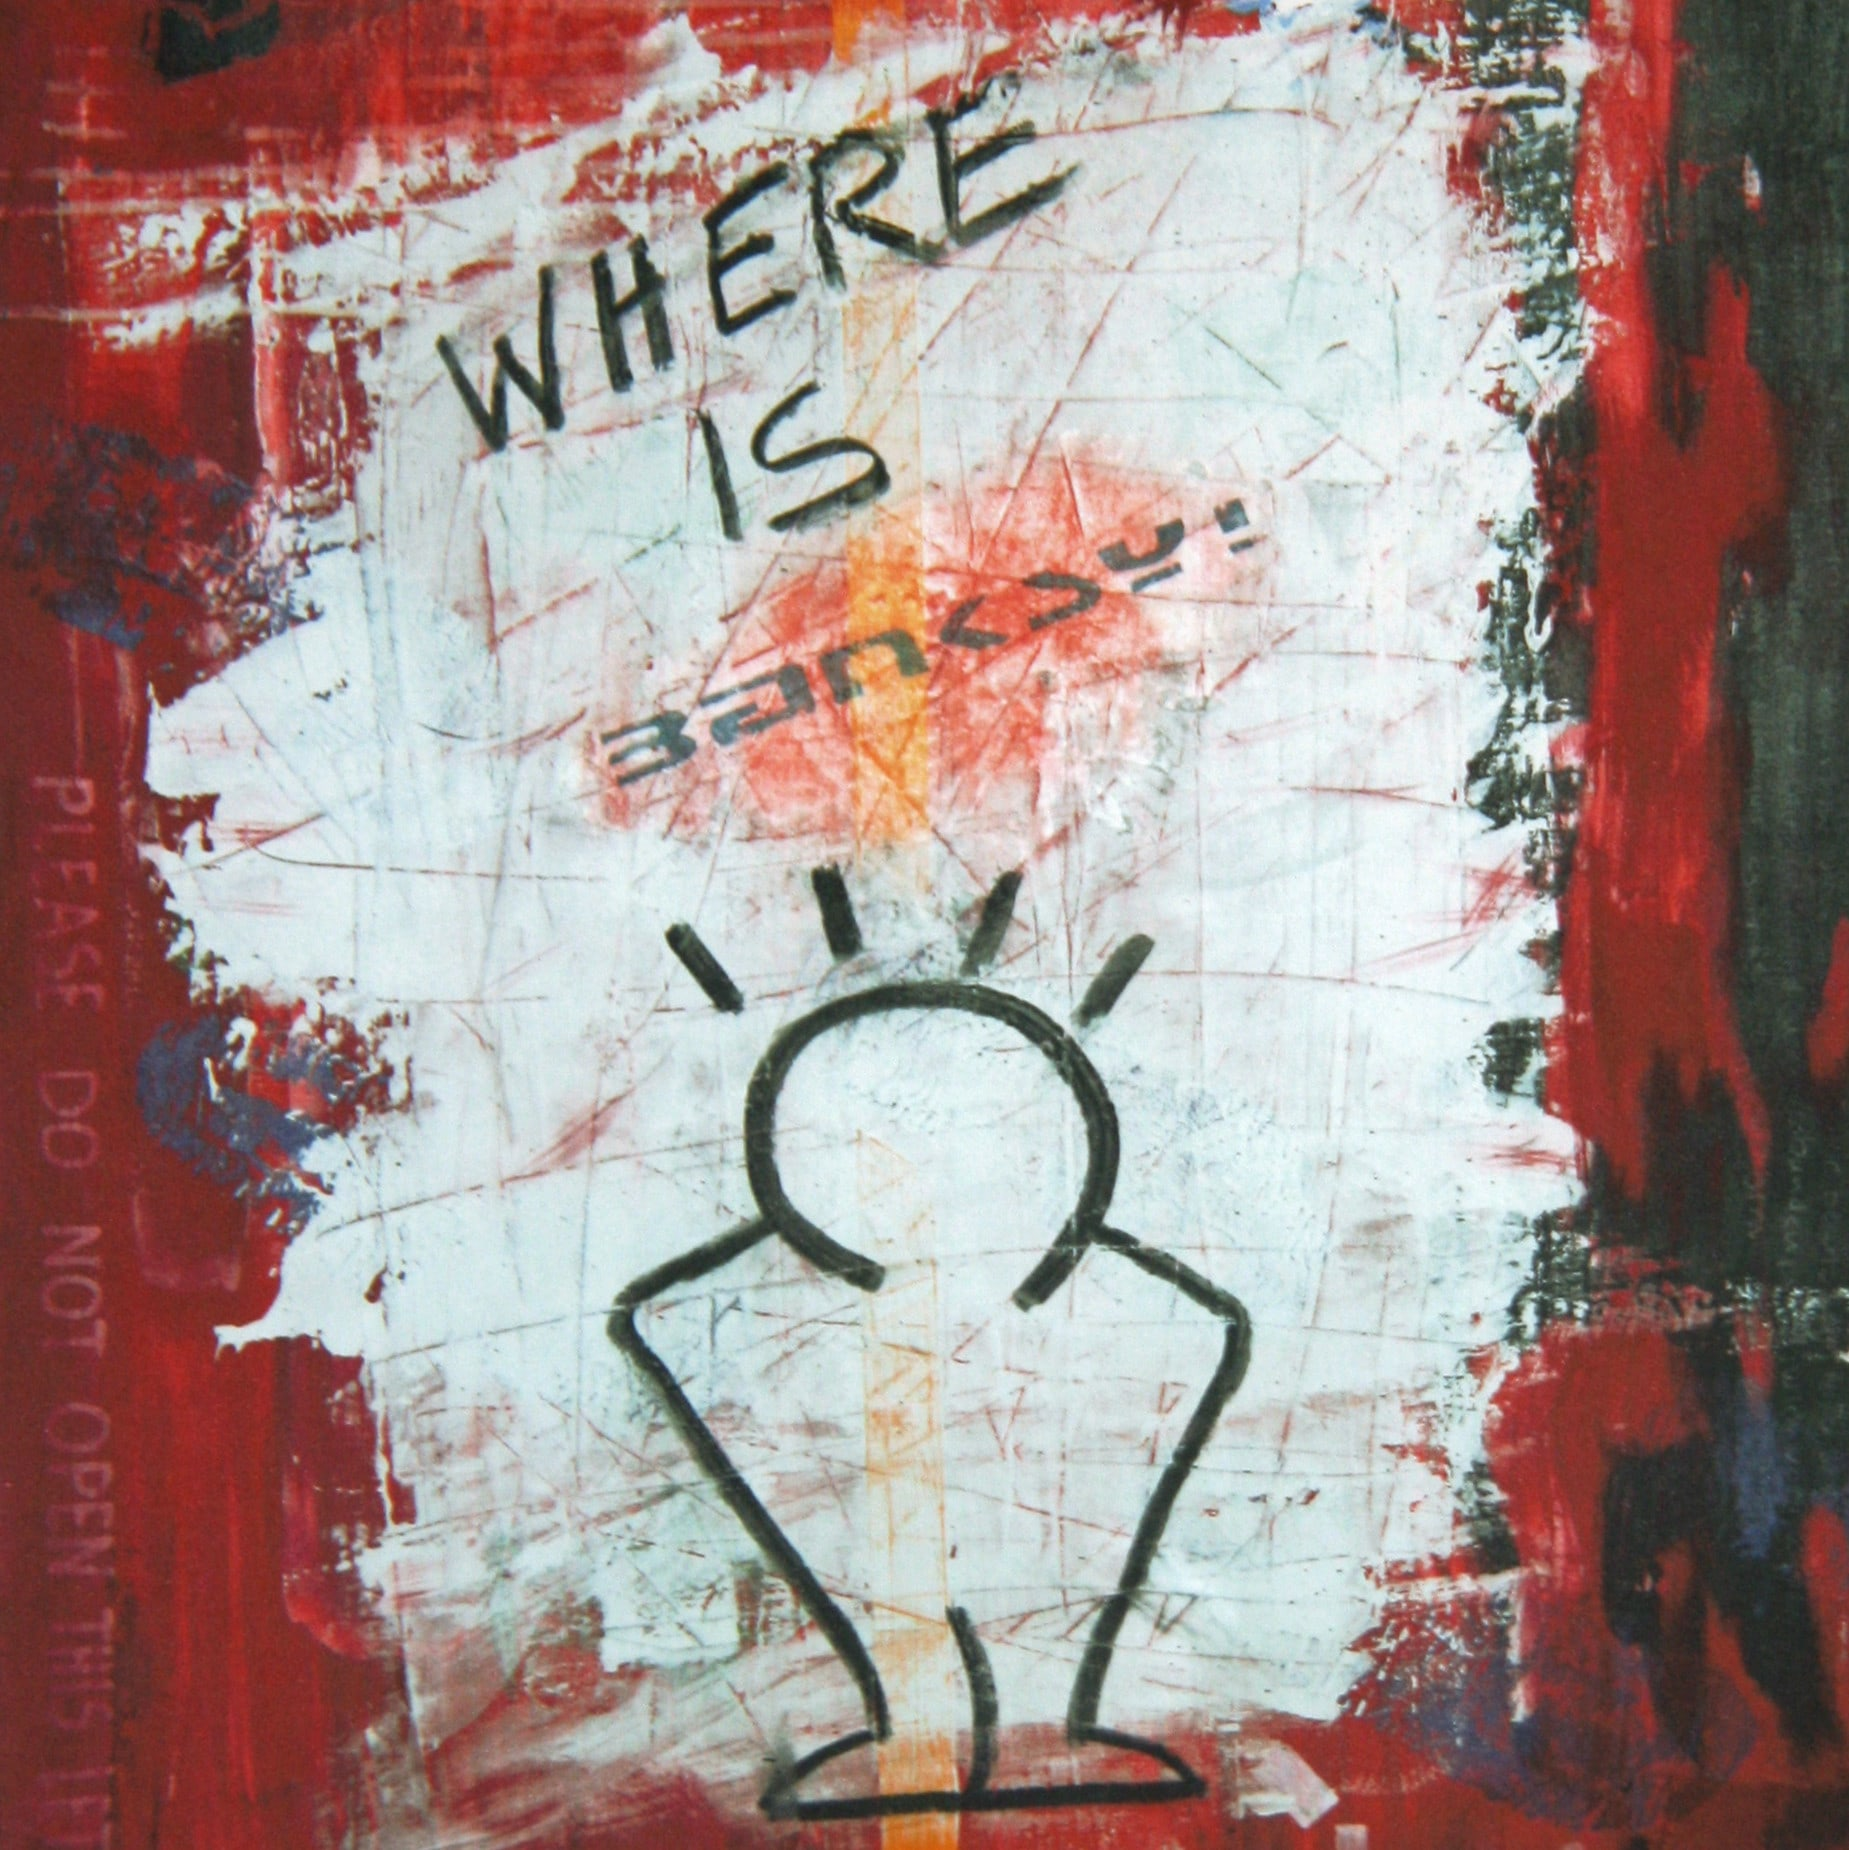 2011 - Where is banksy - Edition 30